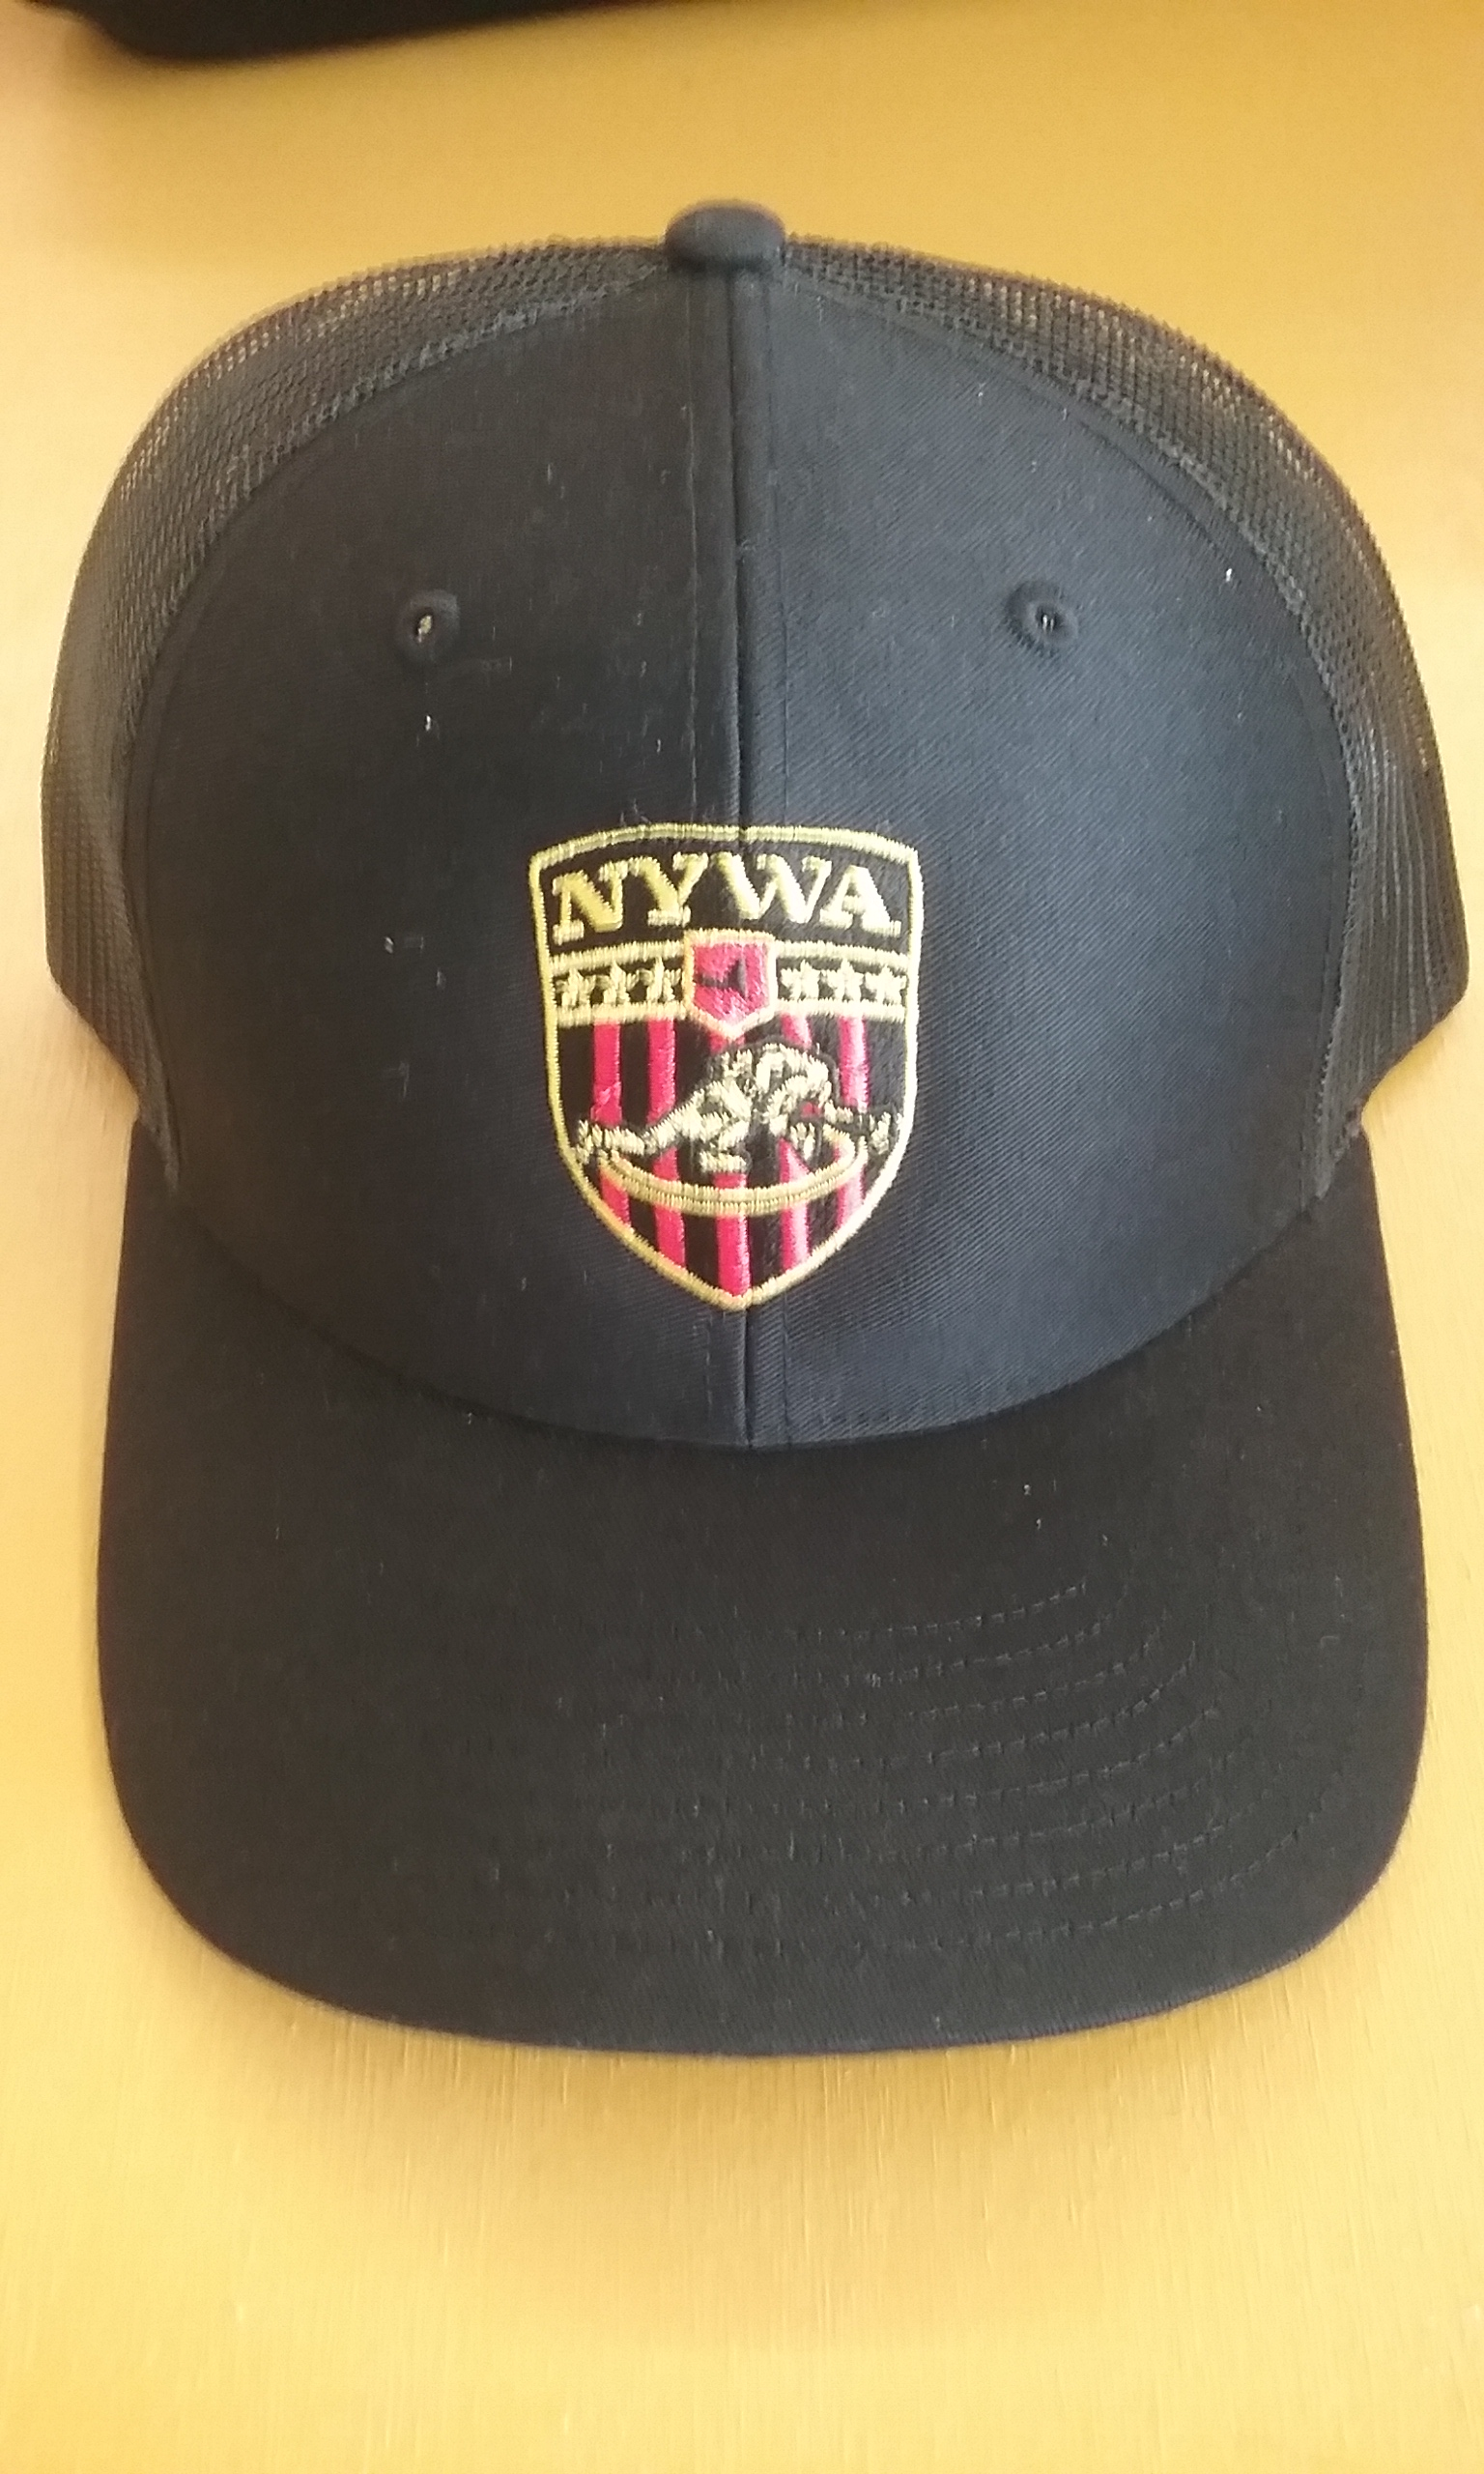 NYWA Trucker Hat Black